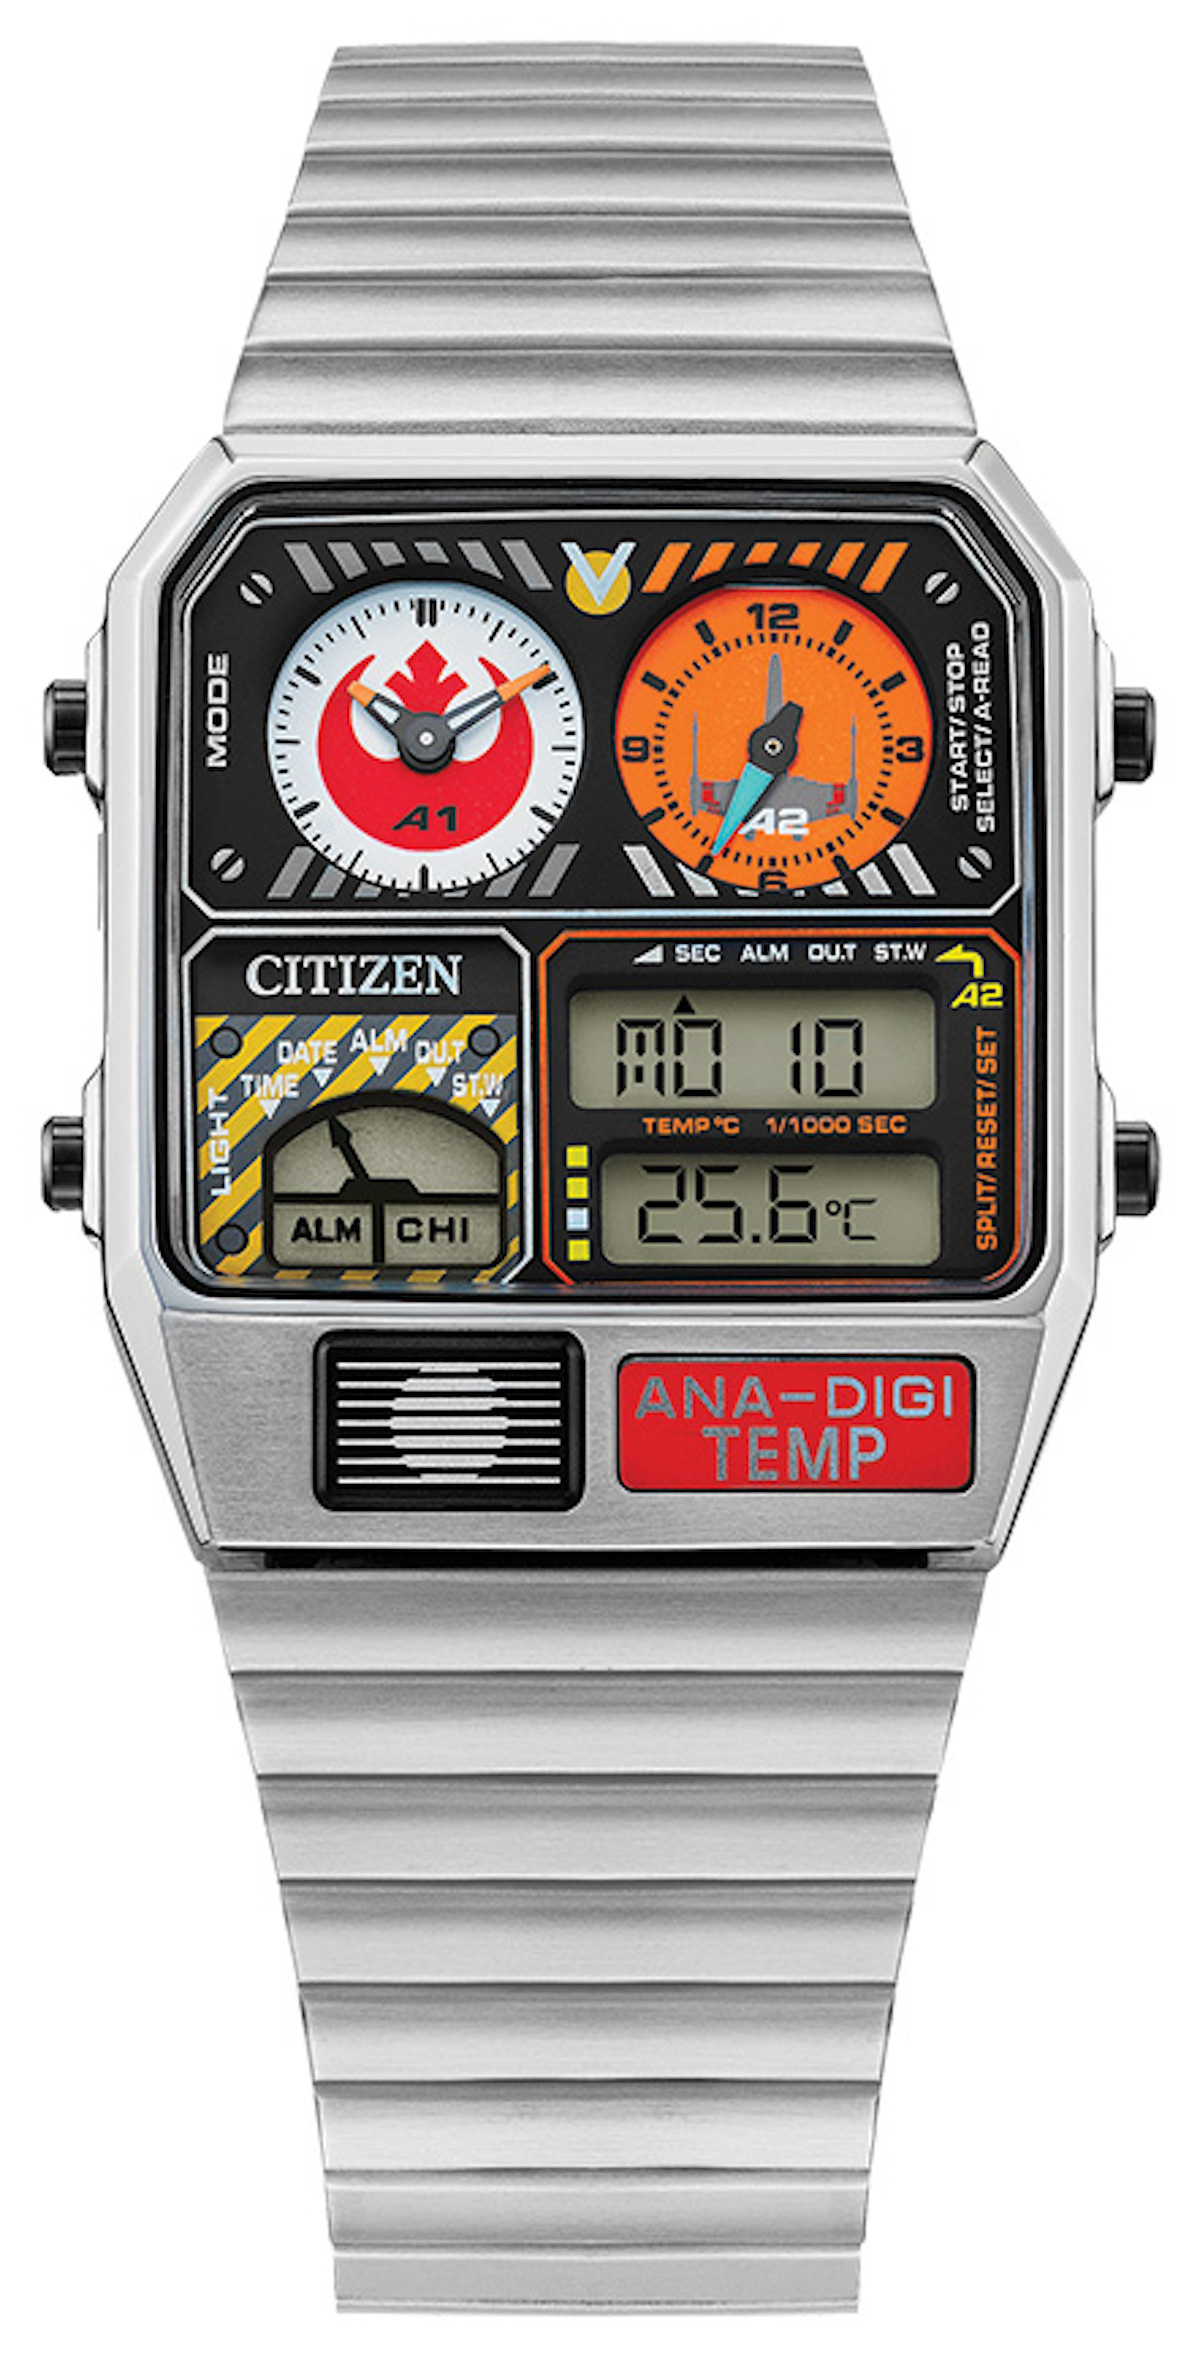 Citizen's Rebel Pilot watch honors Star Wars characters.